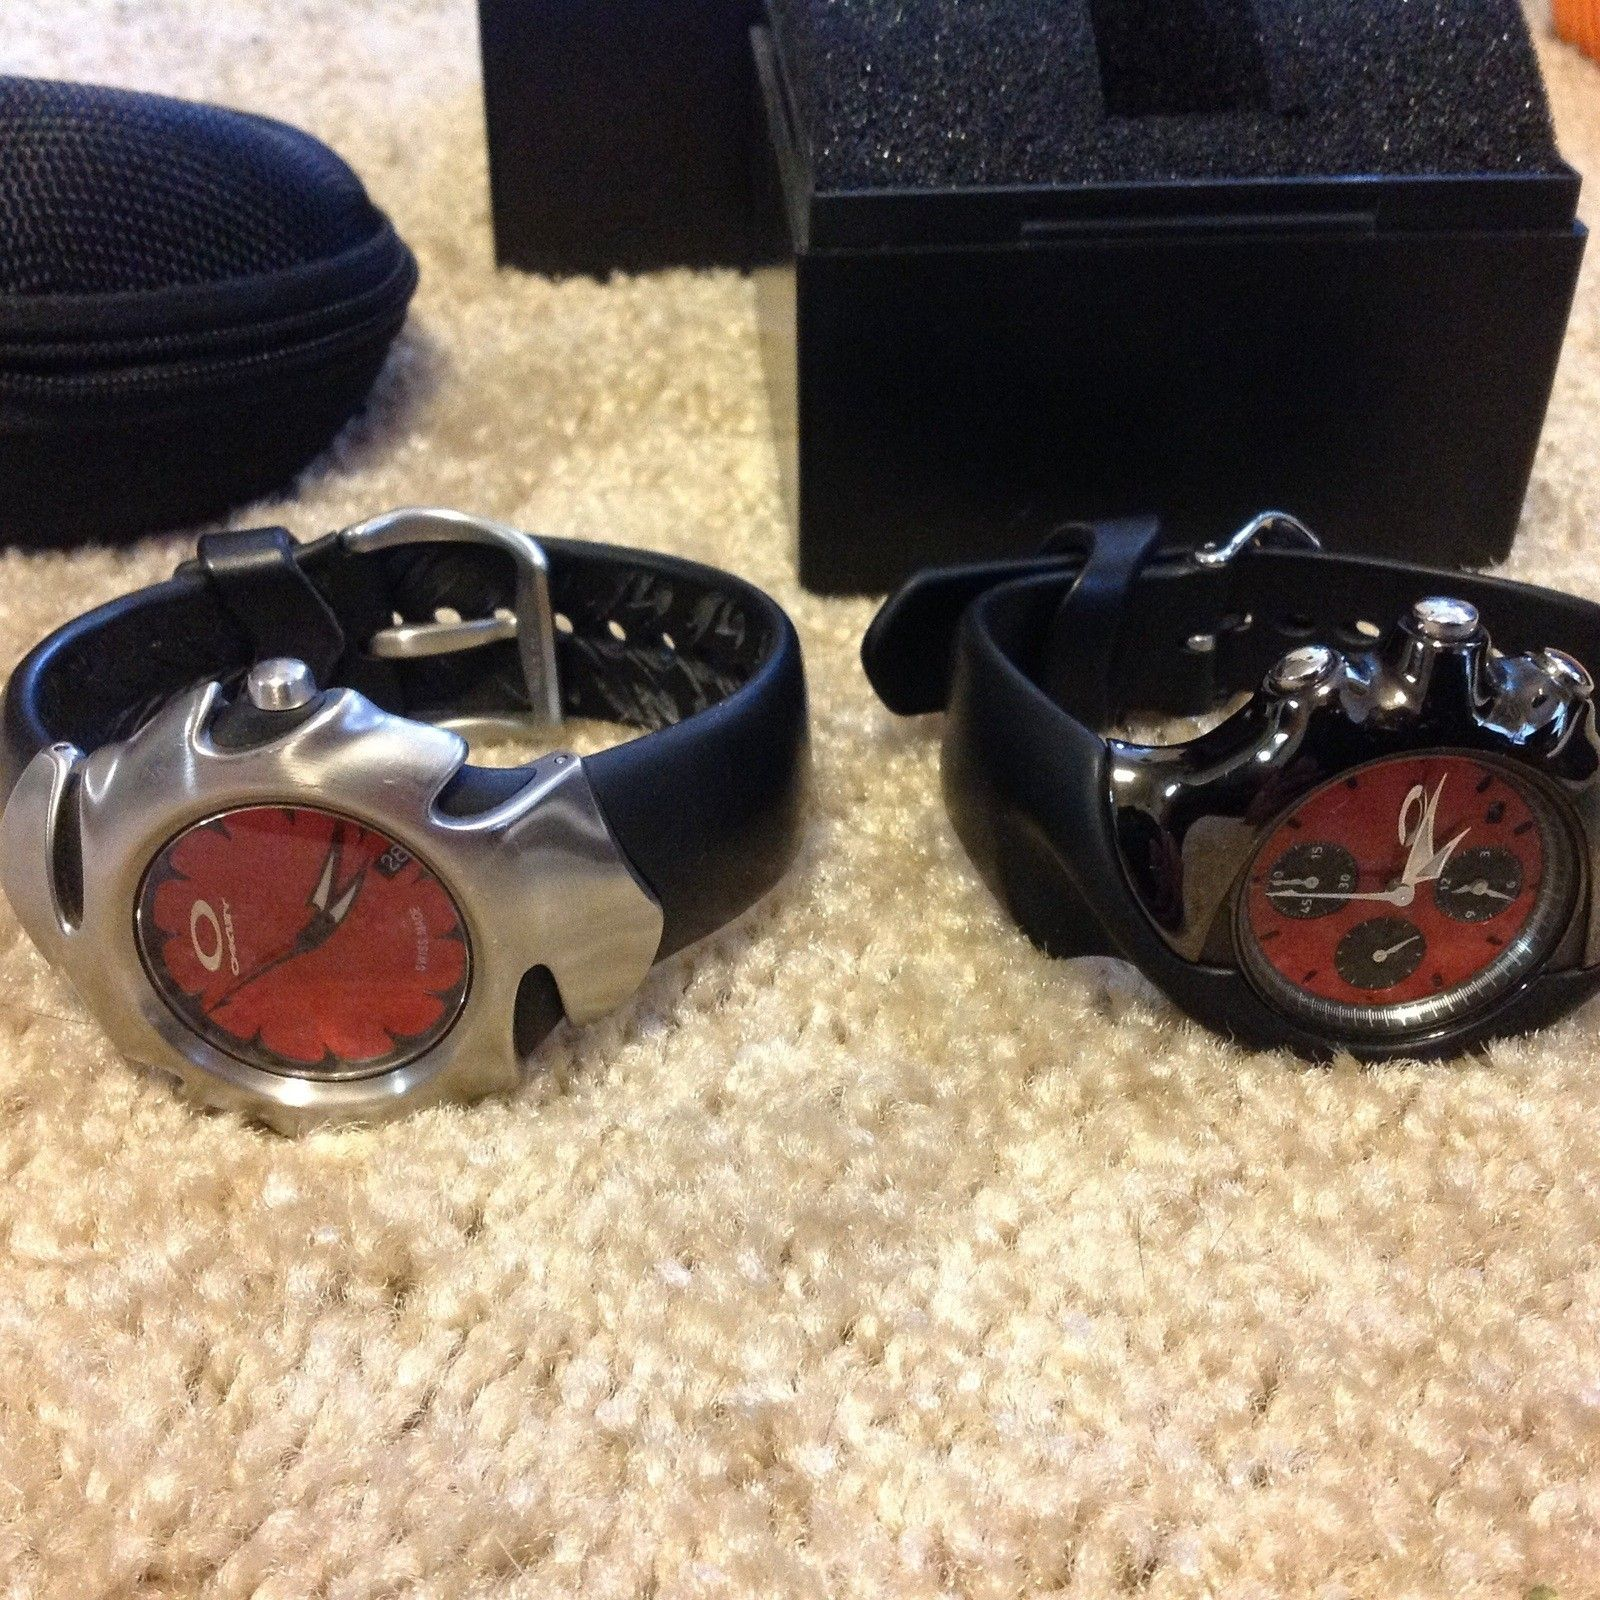 Oakley detonator and blade watches $250 shipped for both - image.jpg